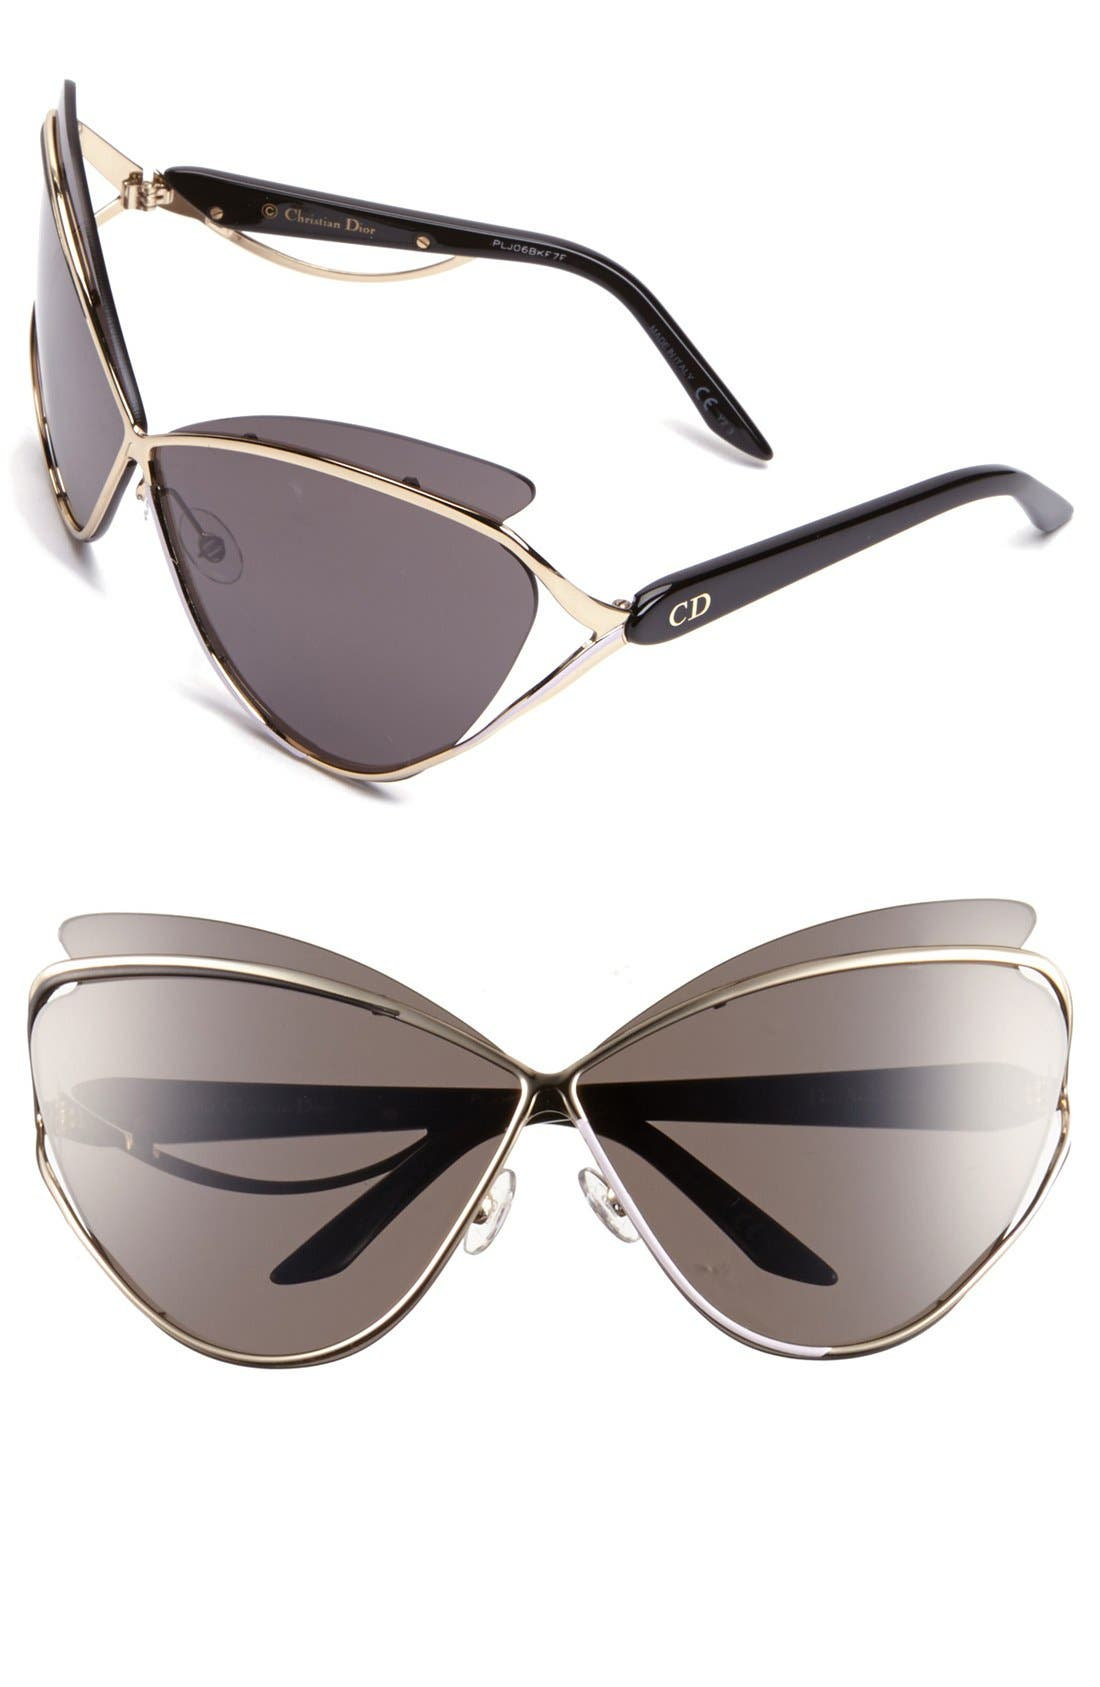 Main Image - Dior 'Audacieuse 1' 72mm Butterfly Sunglasses